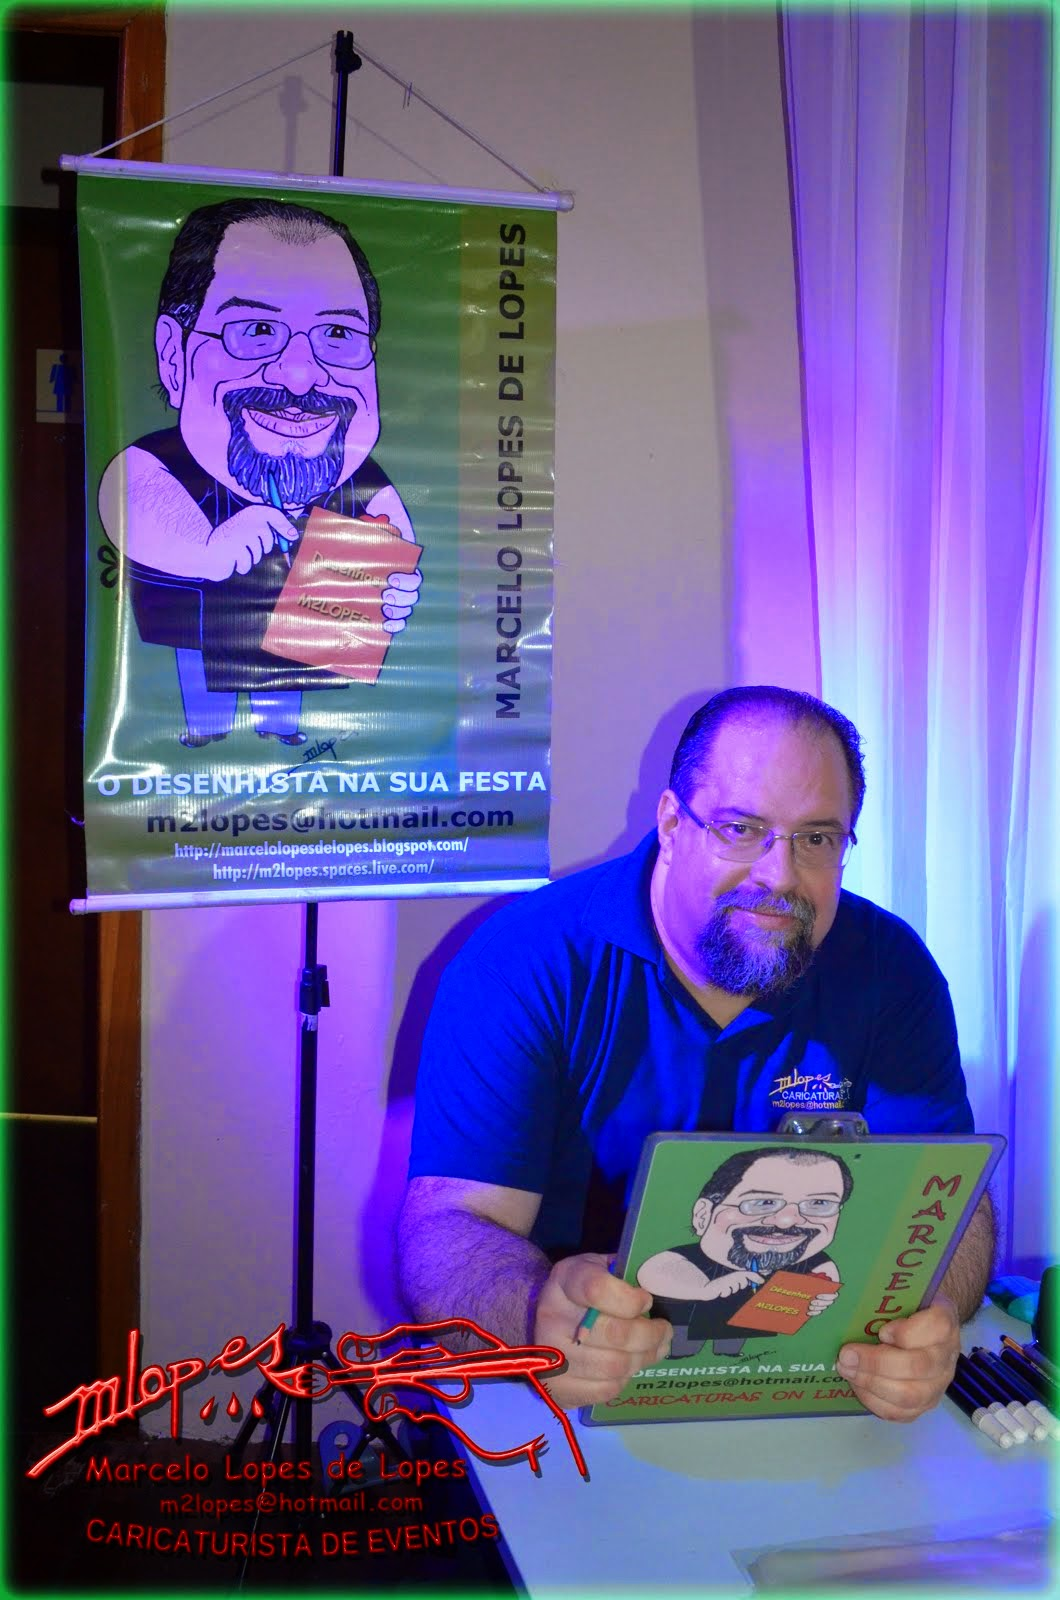 CARICATURISTA